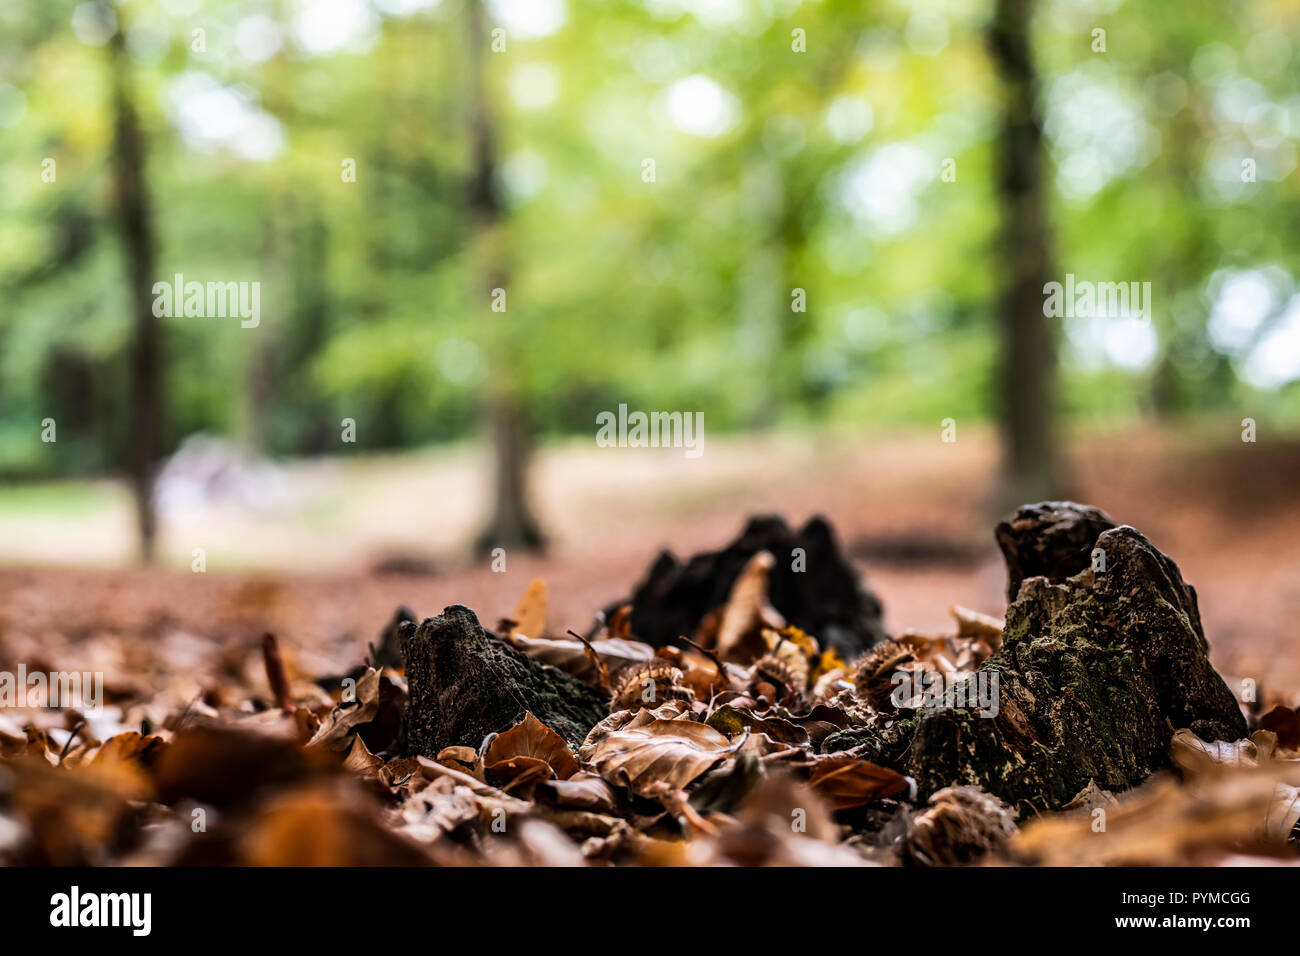 The view of the rest of an organically decomposed cut tree stump in the autumn wetness surrounded by dead leaves and young trees growing. - Stock Image